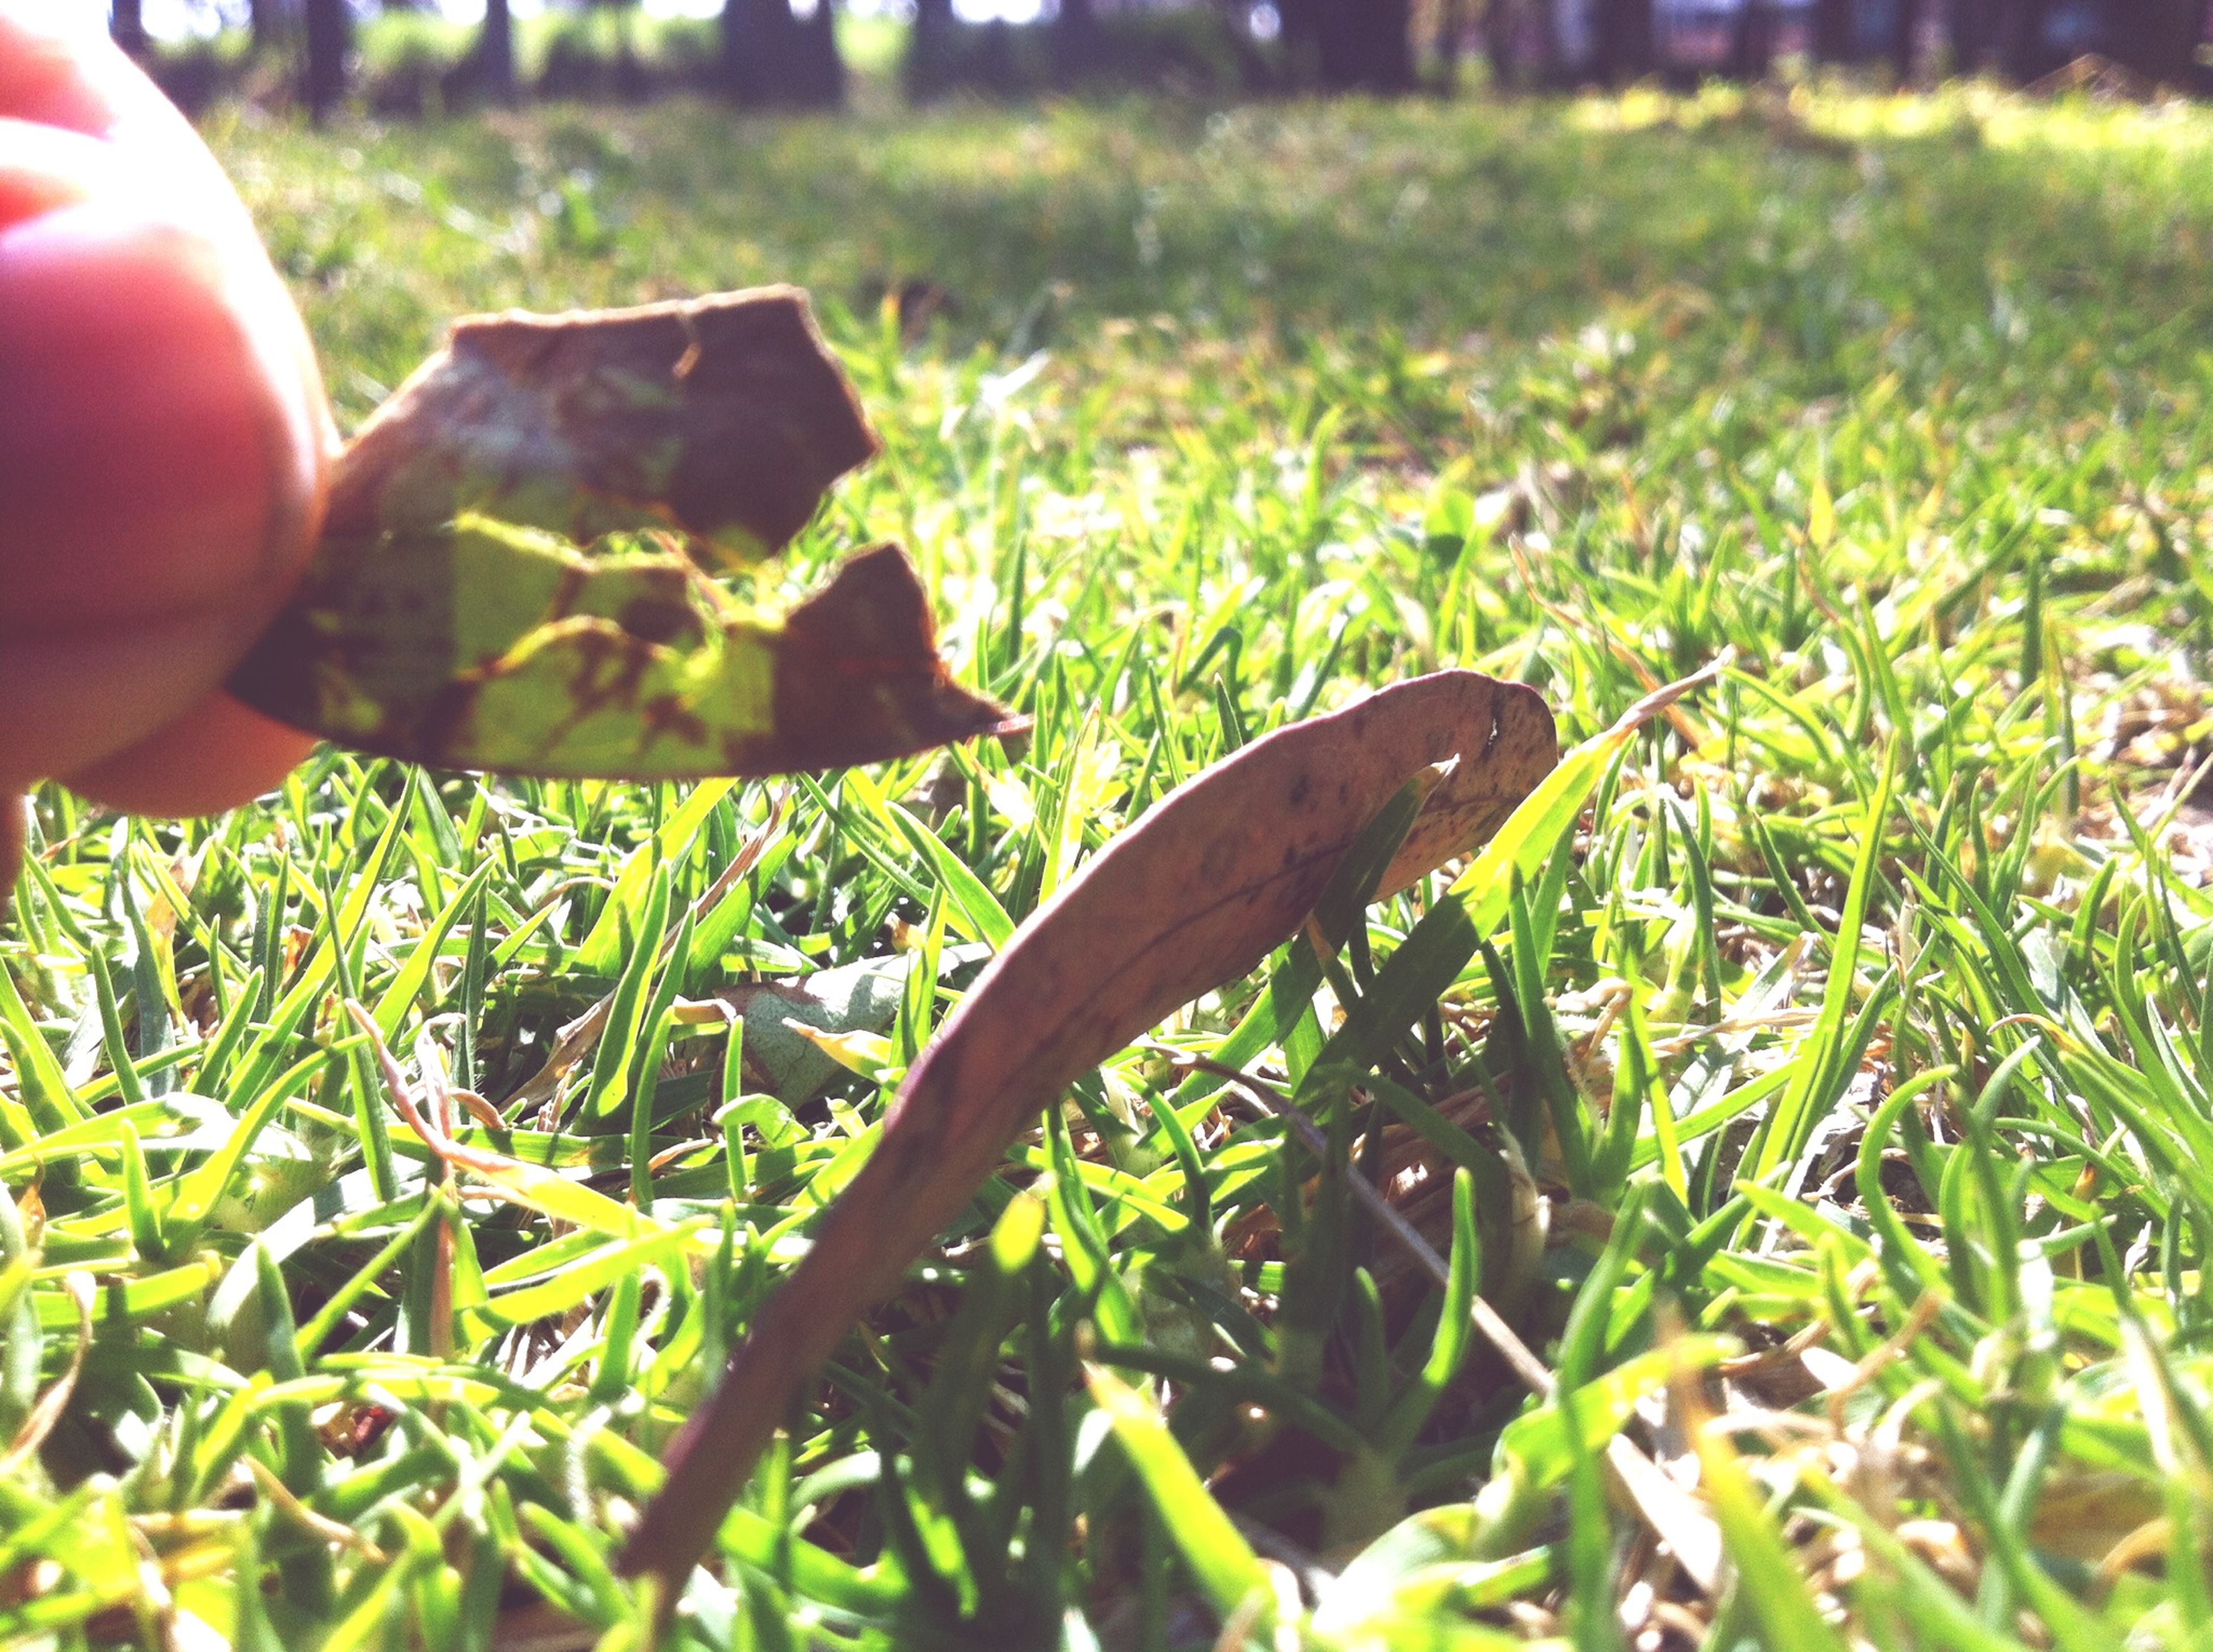 grass, grassy, green color, field, growth, plant, close-up, focus on foreground, nature, part of, selective focus, day, cropped, outdoors, leaf, sunlight, lawn